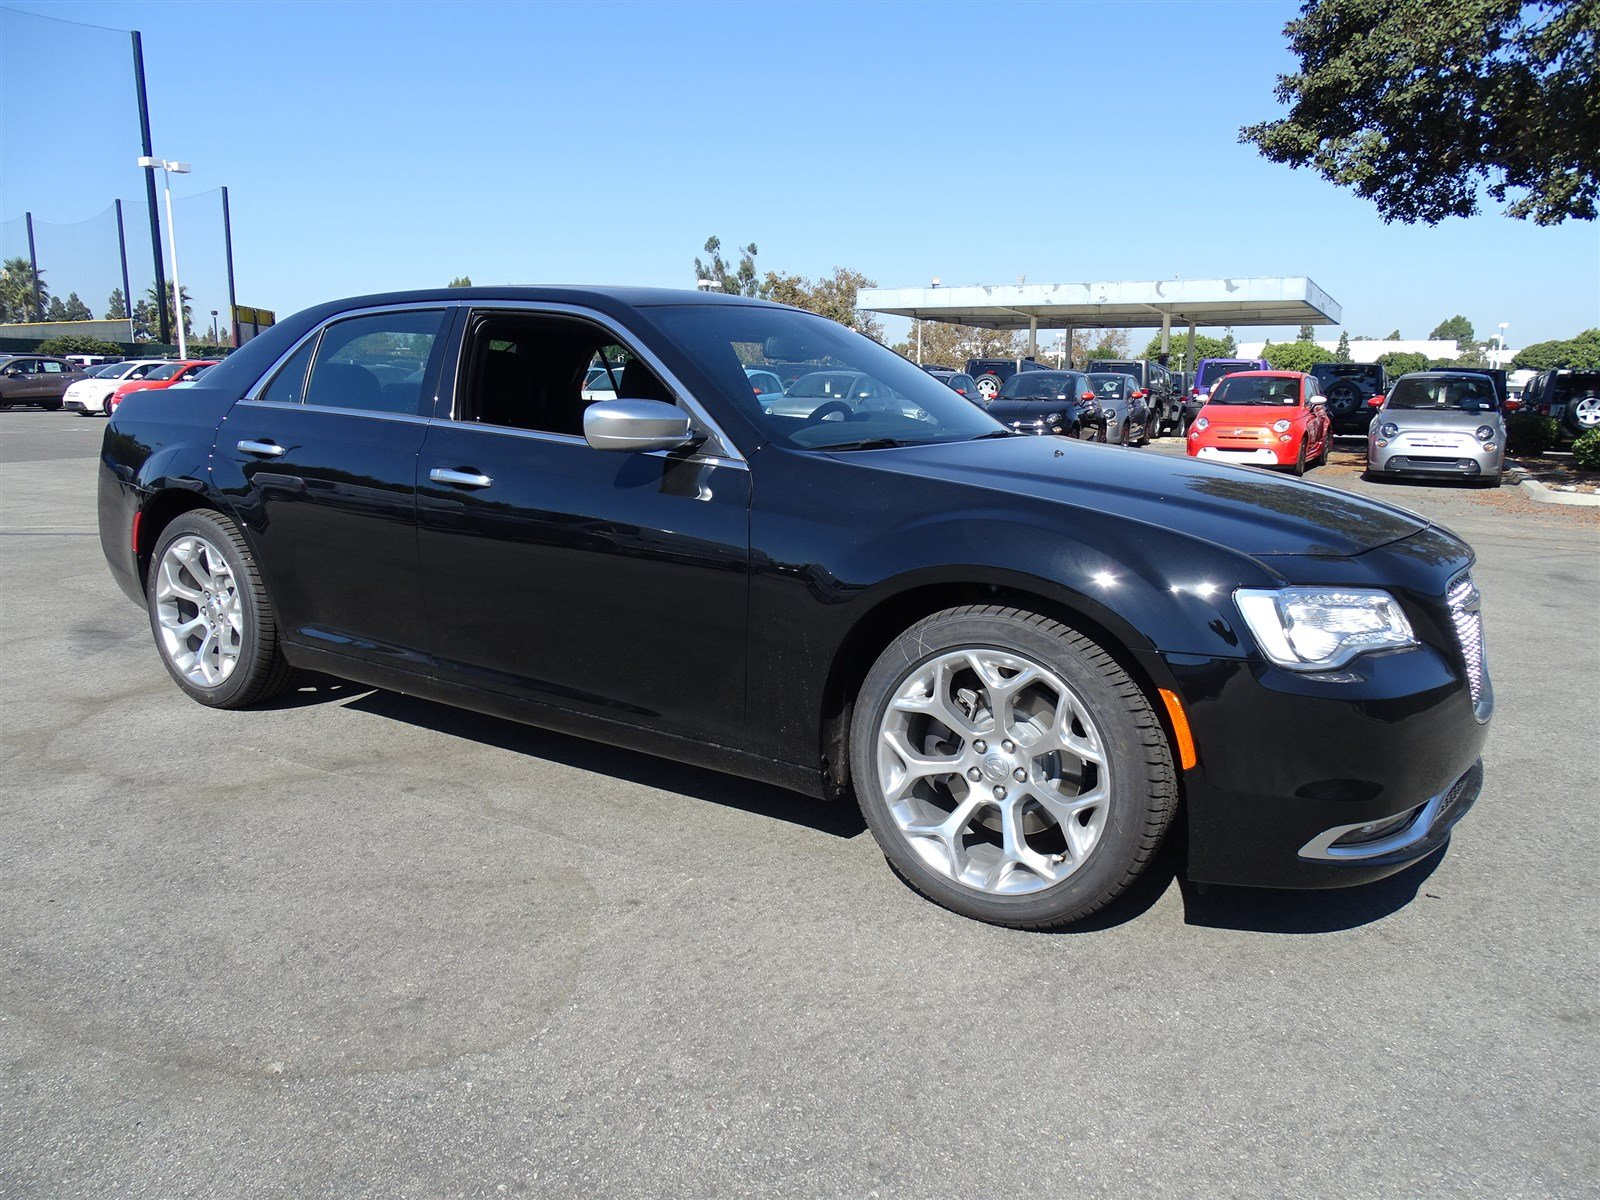 fulton used price chrysler me in cars near vehicles htm featured pre syracuse sedan owned for sale